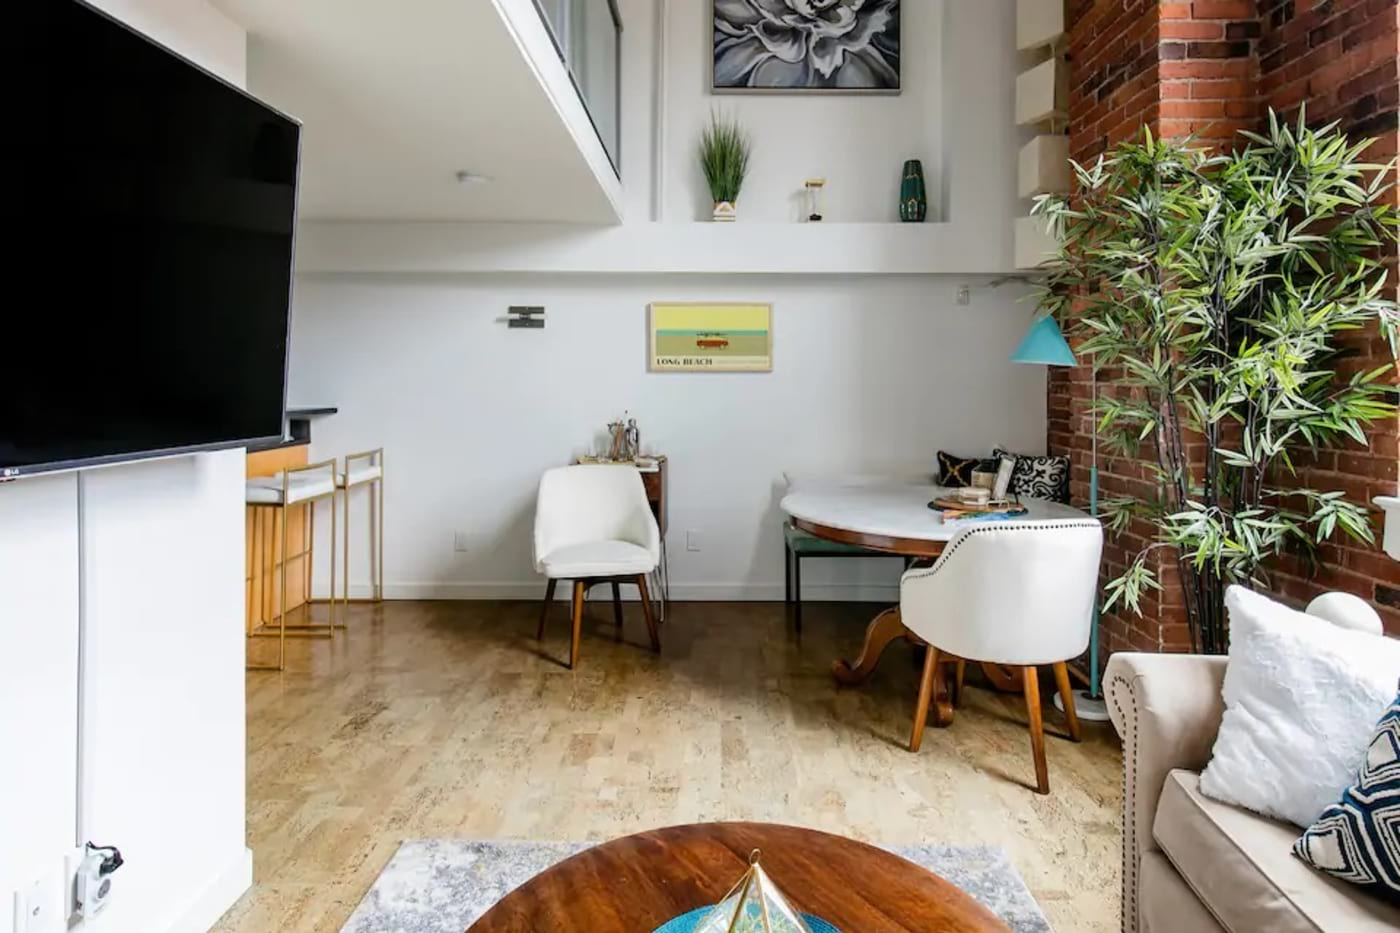 Best Airbnb Plus in Victoria – Chic Two-Story Heritage Loft